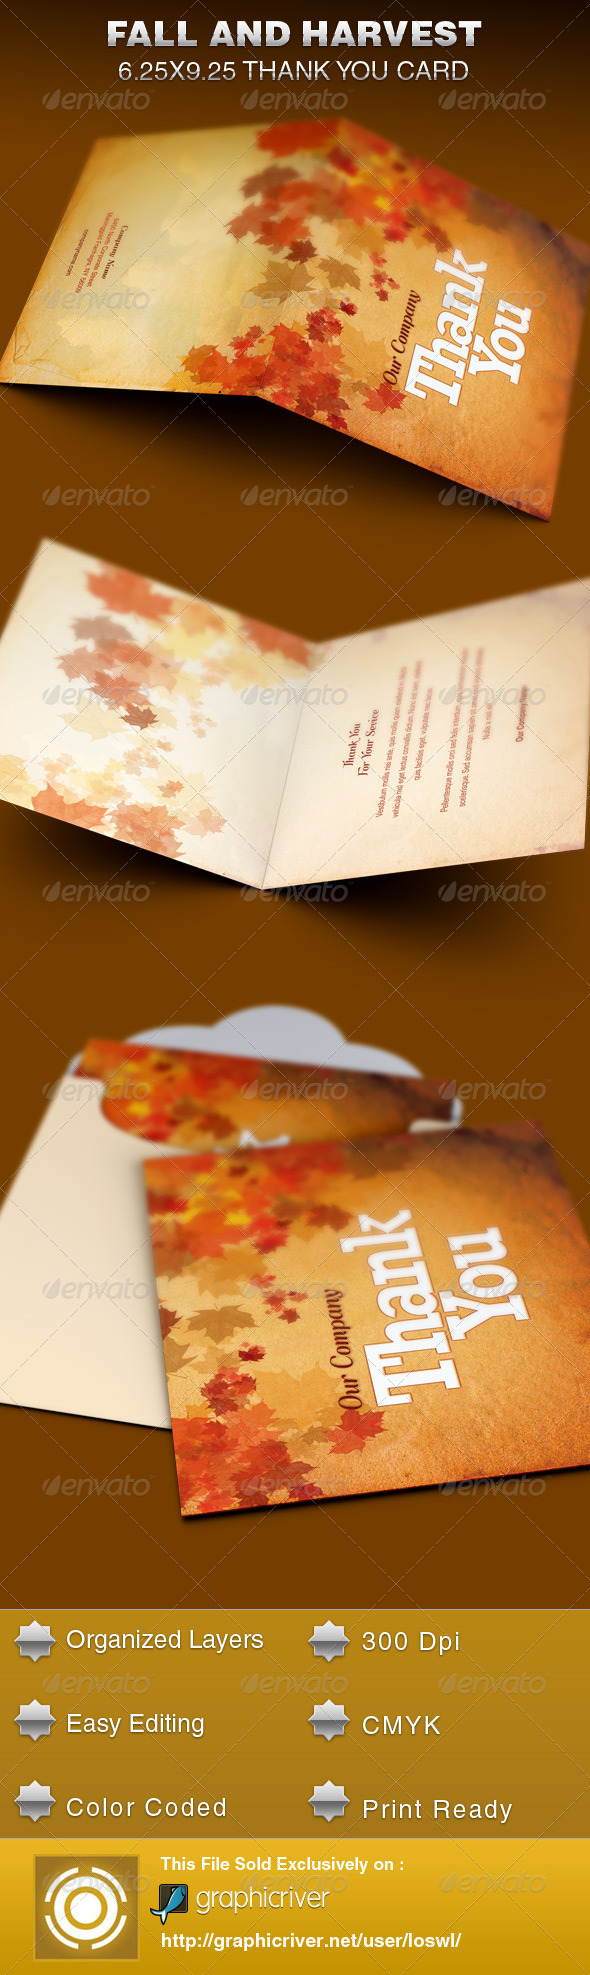 fall and harvest thank you card template example